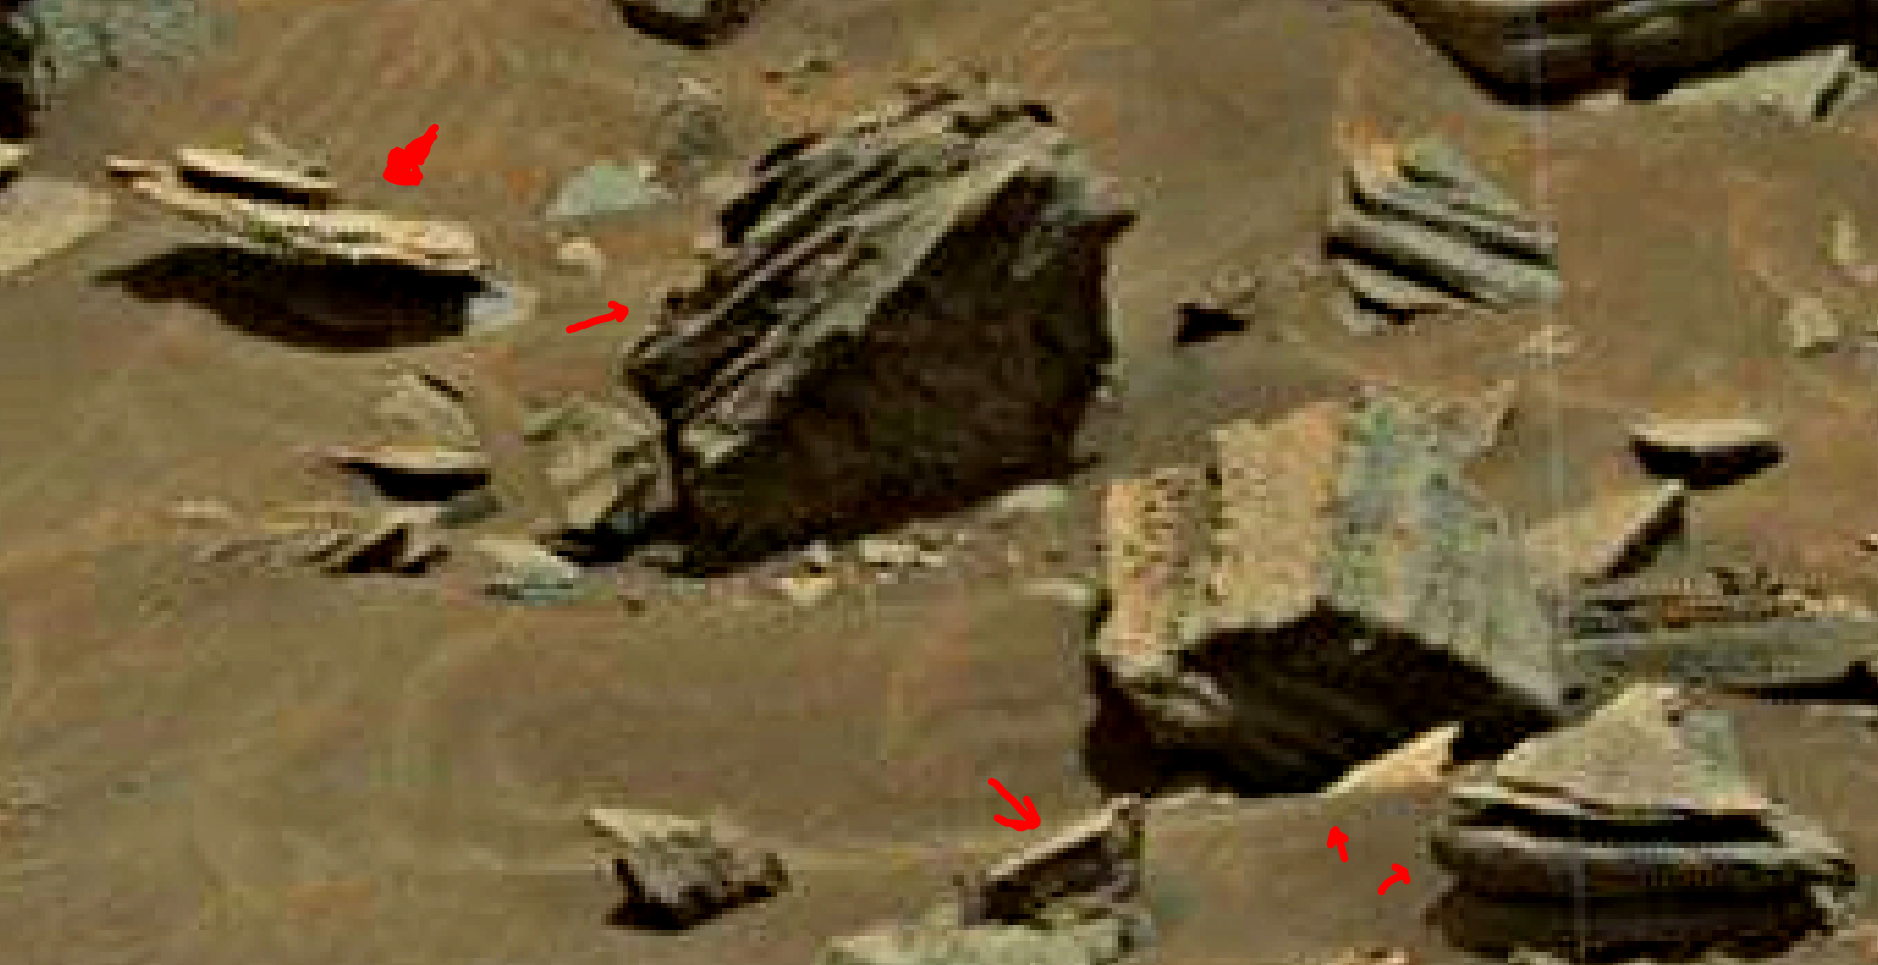 mars-sol-1455-anomaly-artifacts-6-was-life-on-mars